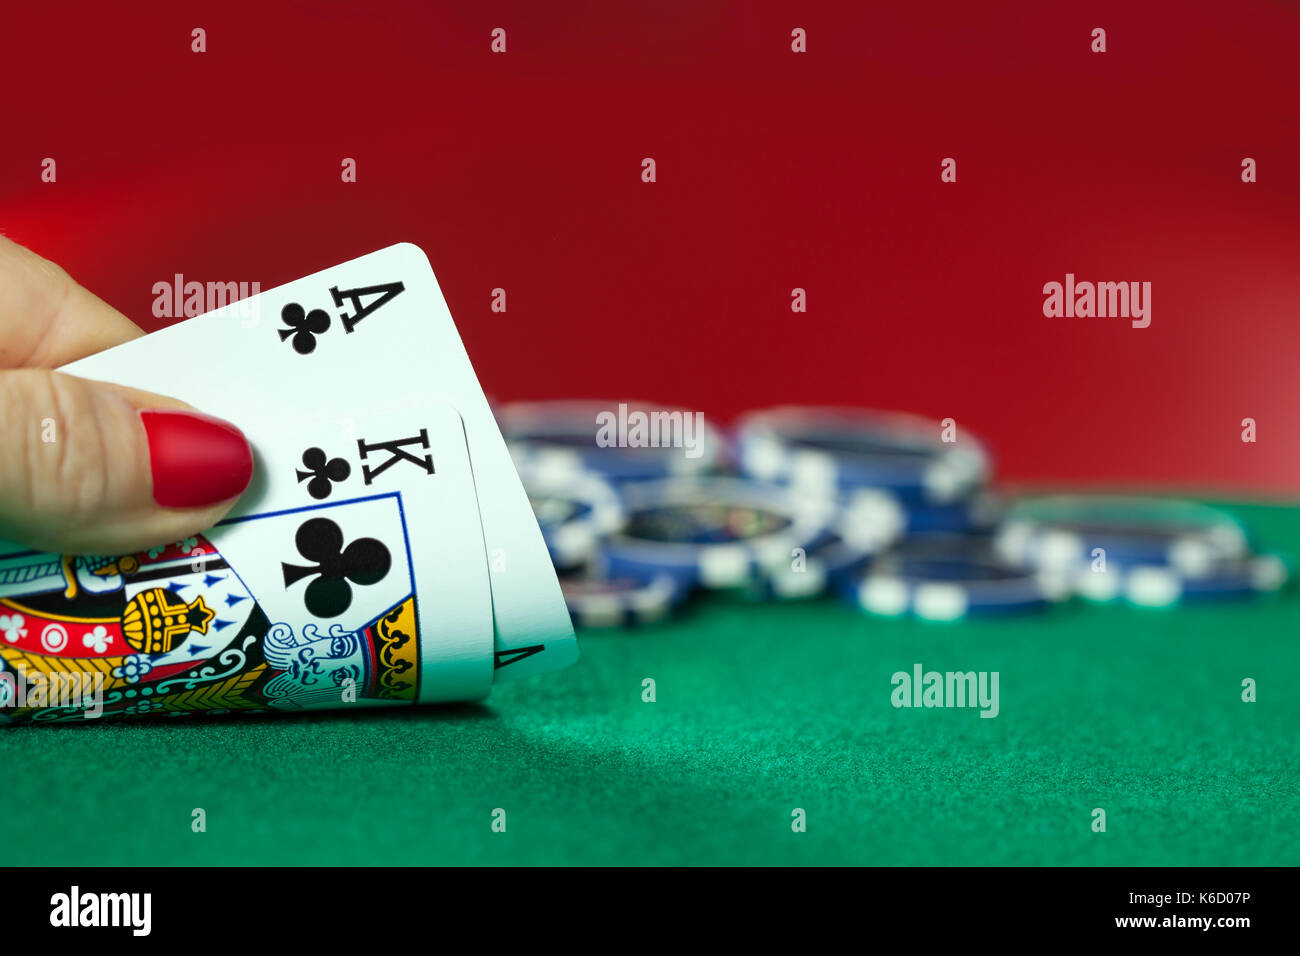 Women Hand Holds Ace with King and Poker Chips - Stock Image